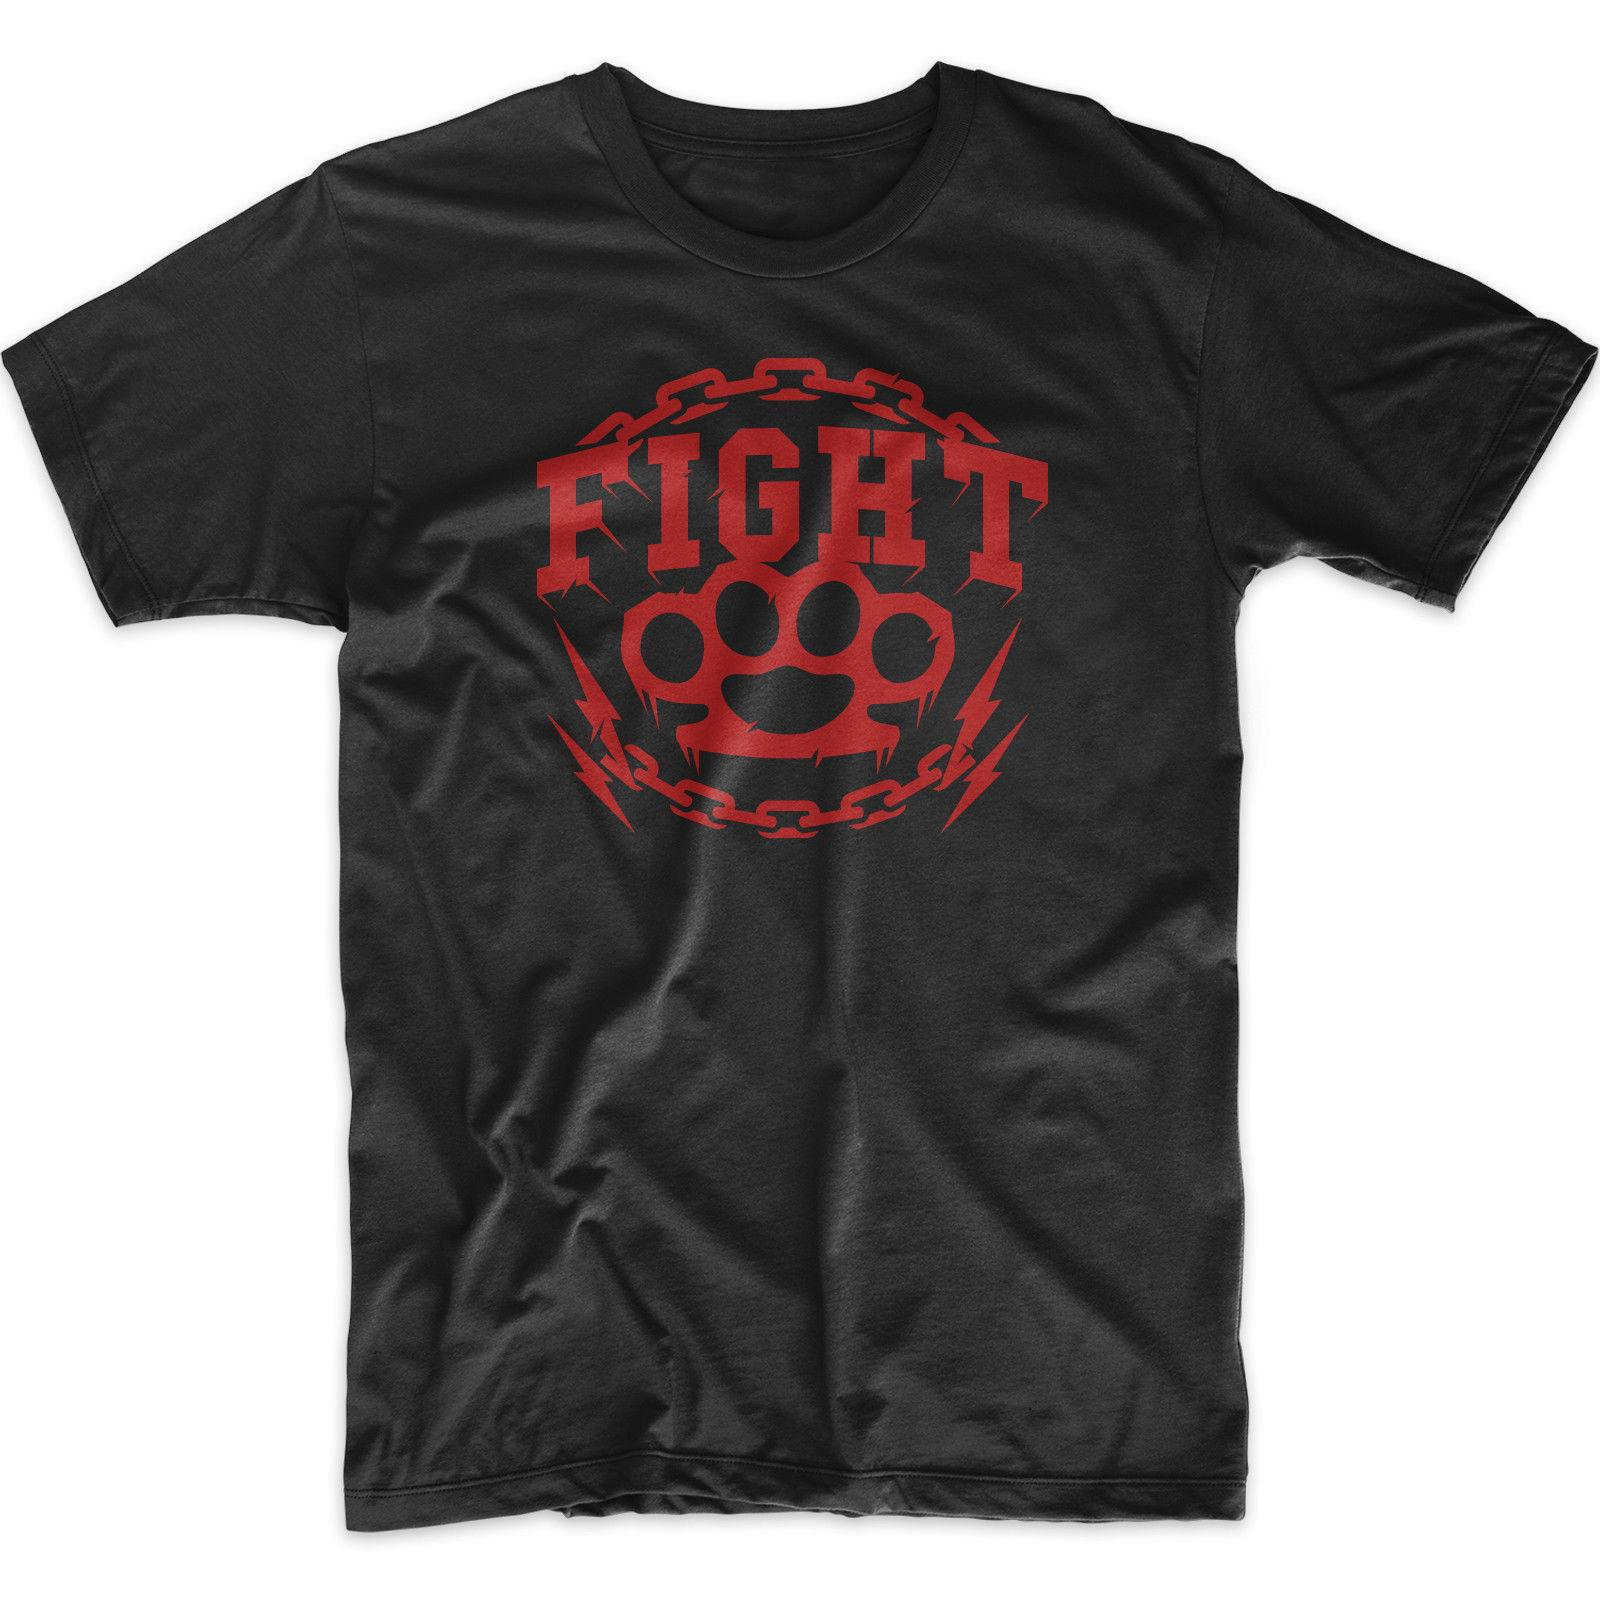 7bbfceac FIGHT MOTIVATION SLOGAN UNISEX T SHIRT GYM GIFT IDEA TOP Hipster O Neck Cool  Top Hip Hop Short Sleeve 2018 Funny Tee Cotton T Shirts Fitted Shirts From  ...